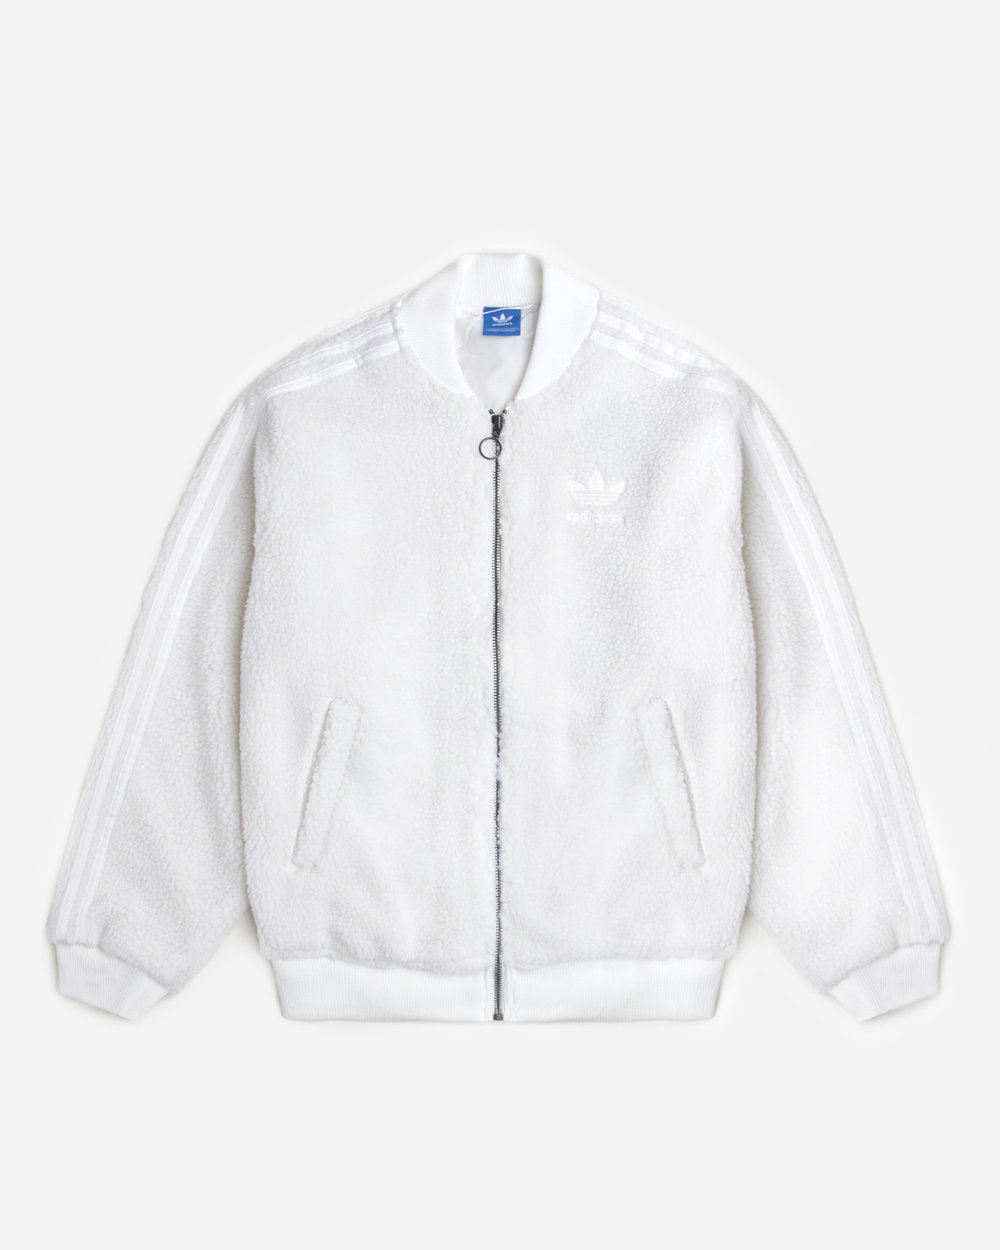 62068be6bf50 adidas Originals Goes Shearling With SST Track Jacket — CNK ...